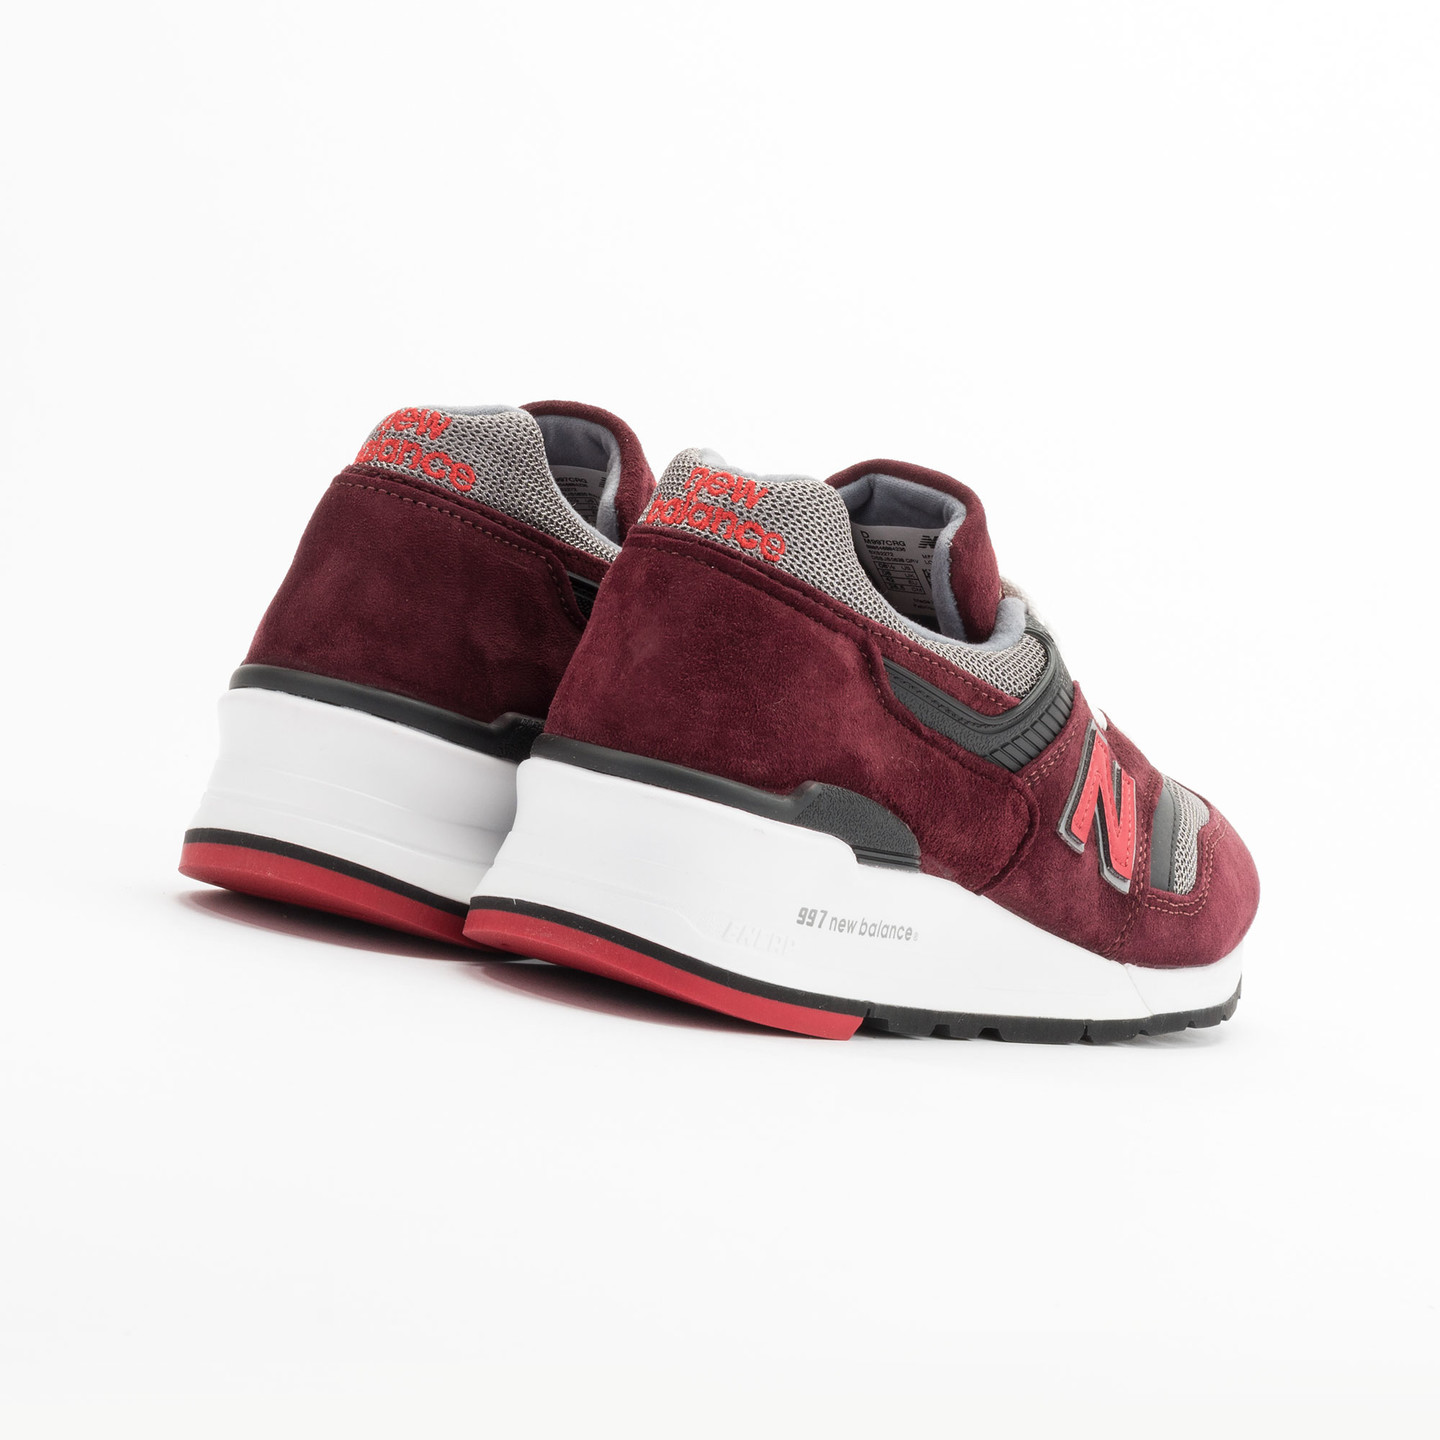 New Balance M997 CRG - Made in USA Brick Red / Black / Grey M997CRG-45.5